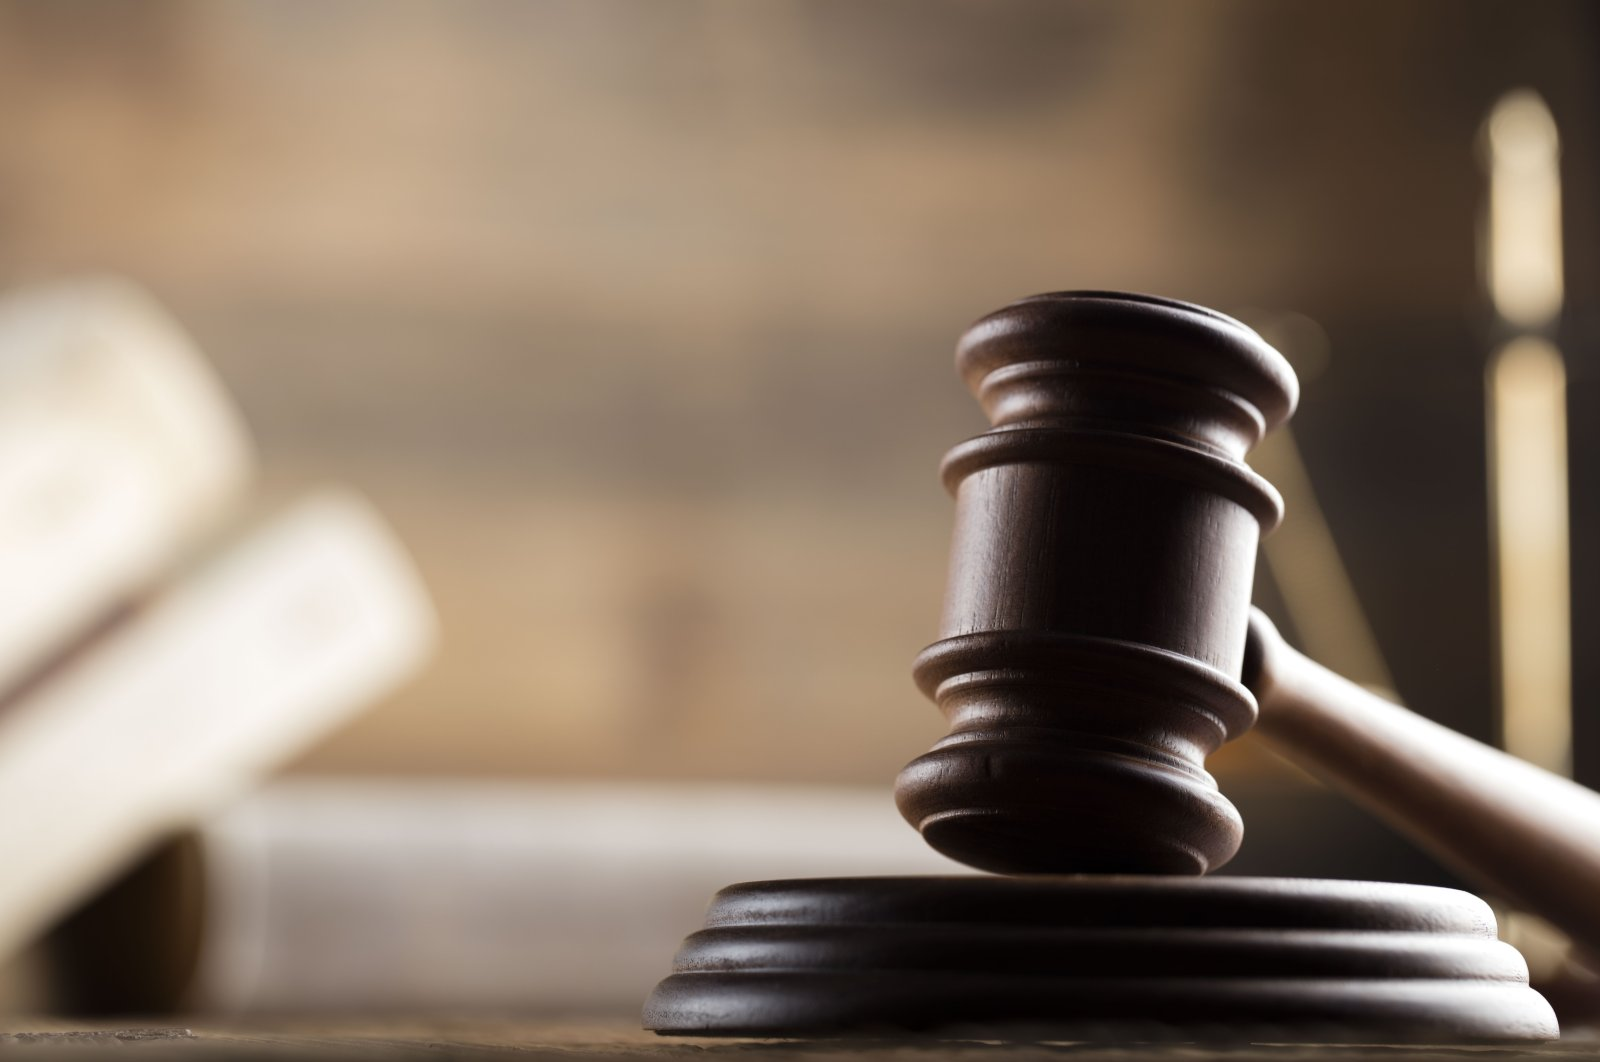 A judge's mallet in an undated photo. (Shutterstock Photo)